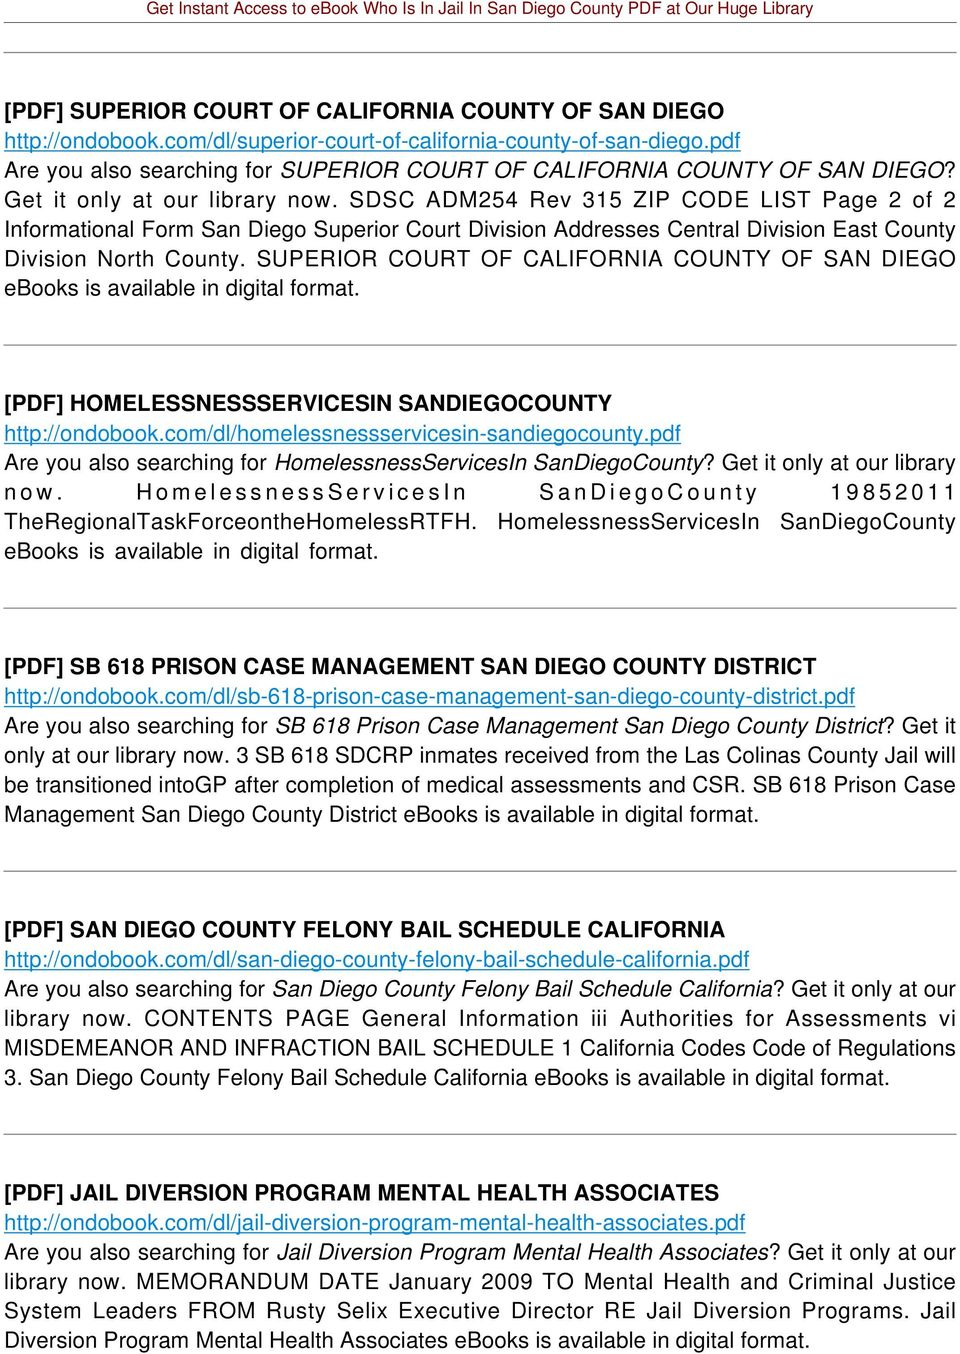 SDSC ADM254 Rev 315 ZIP CODE LIST Page 2 of 2 Informational Form San Diego Superior Court Division Addresses Central Division East County Division North County.